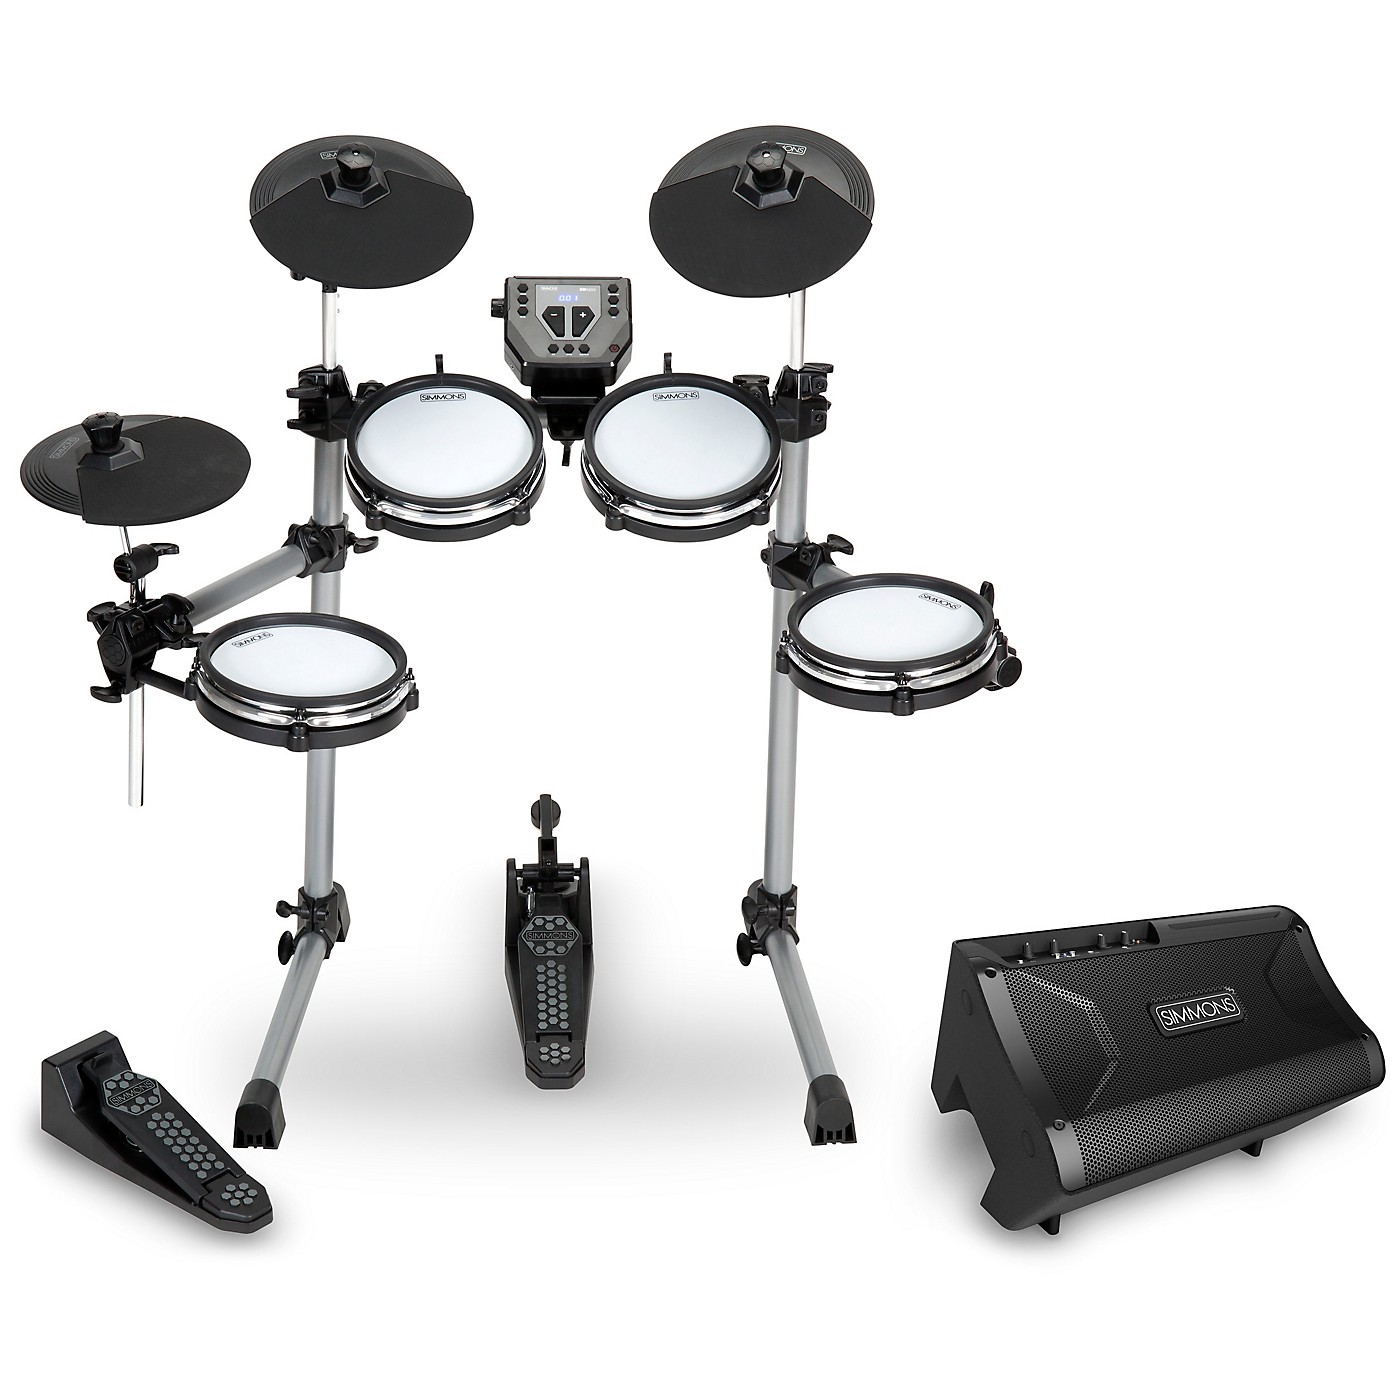 Simmons SD350 Electronic Drum Kit With Mesh Pads and DA2108  Drum Set Monitor thumbnail